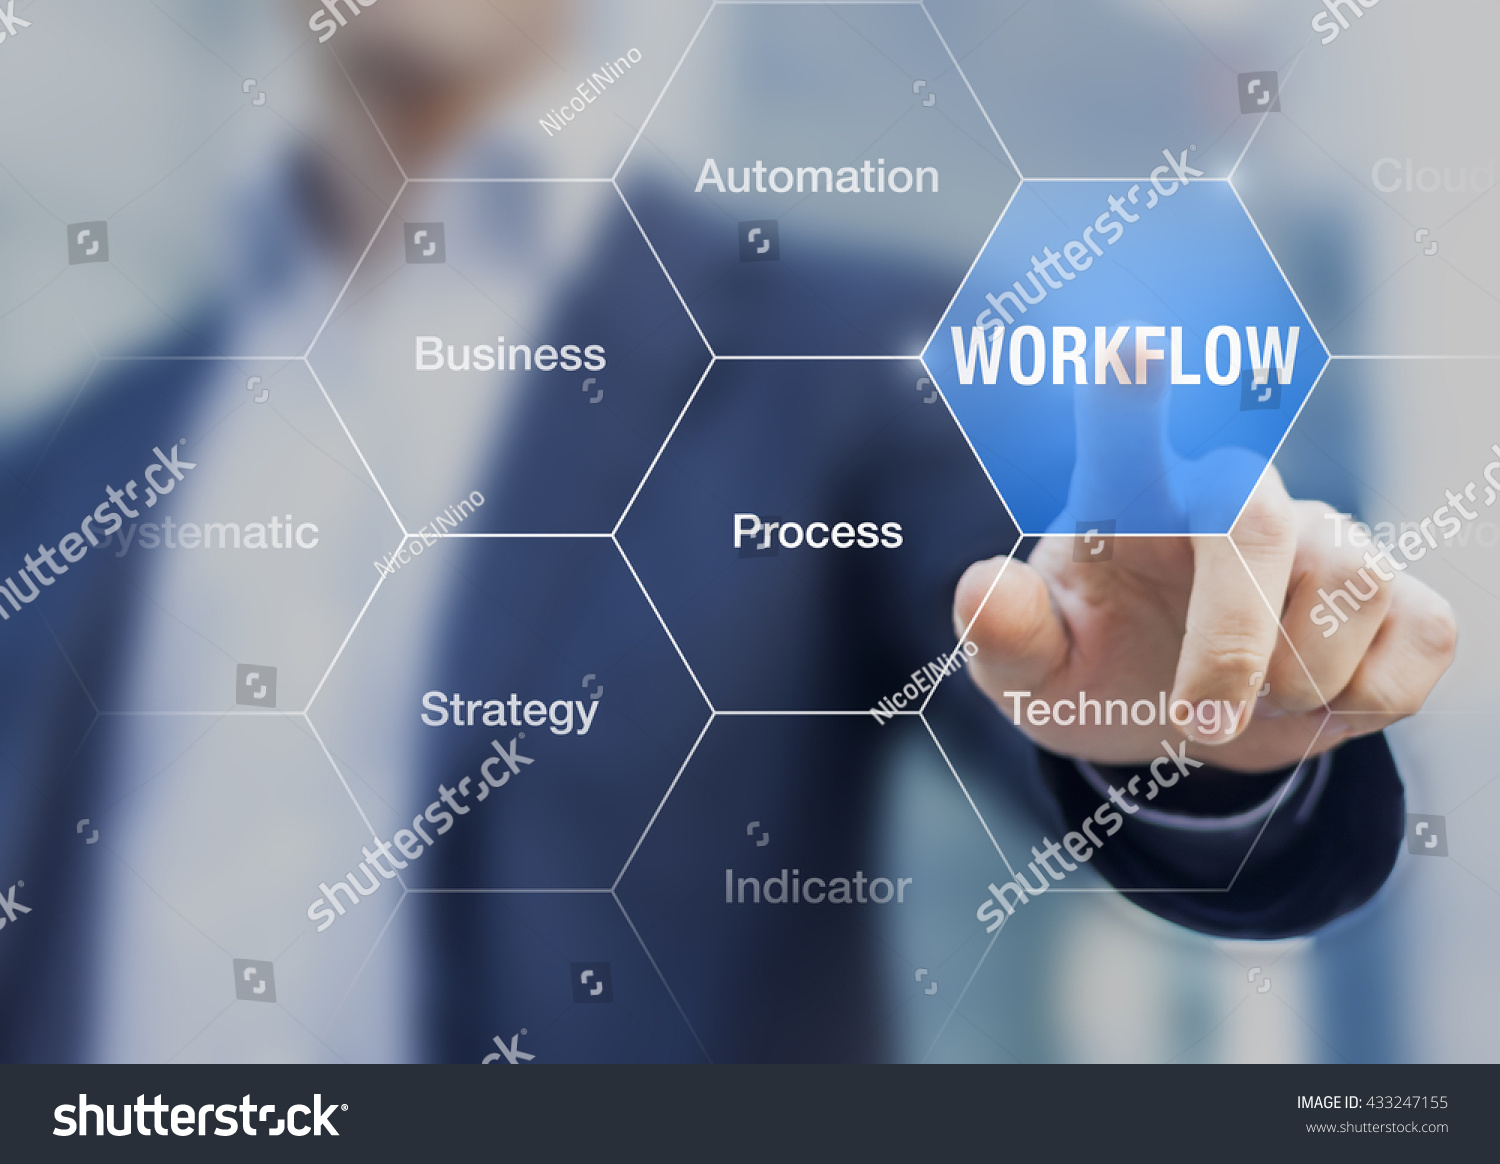 Automation Technology: Concept About Workflow Improve Efficiency Process Stock